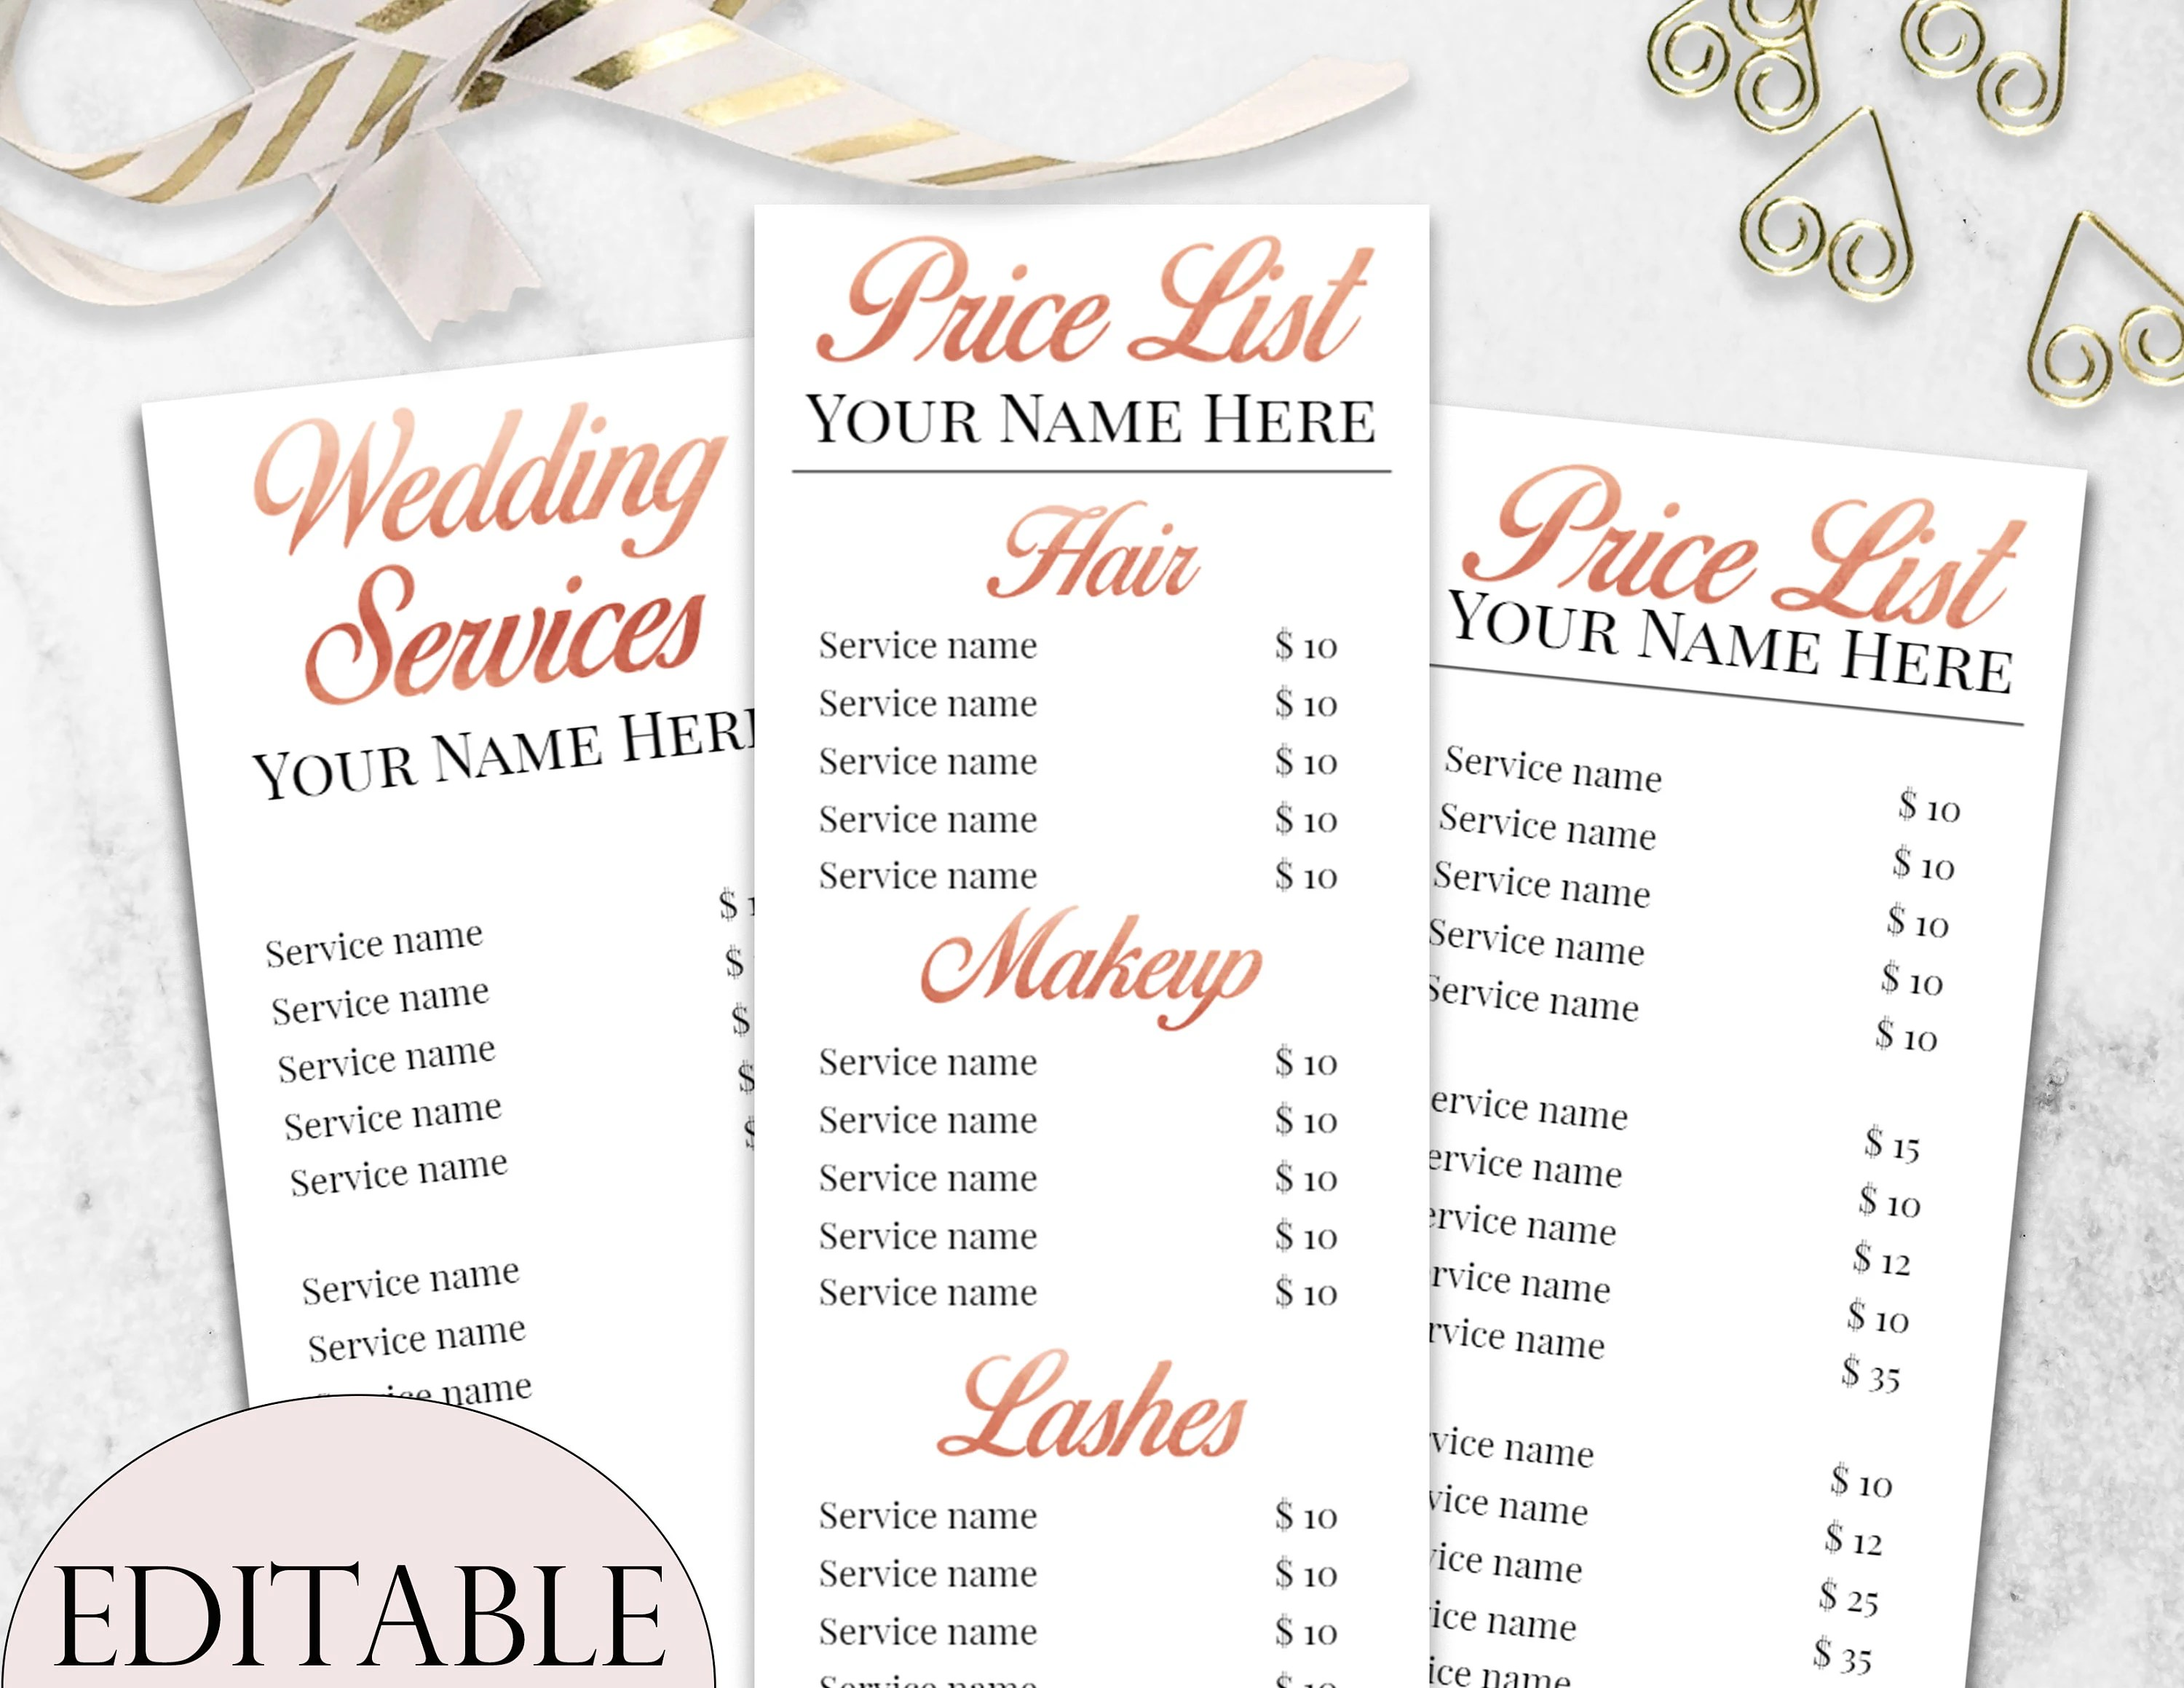 Beauty Salon Prices Beauty Salon Price List Template Bundle Editable Price List Rose Gold Price List Wedding Hair And Makeup Price List Cosmetologist